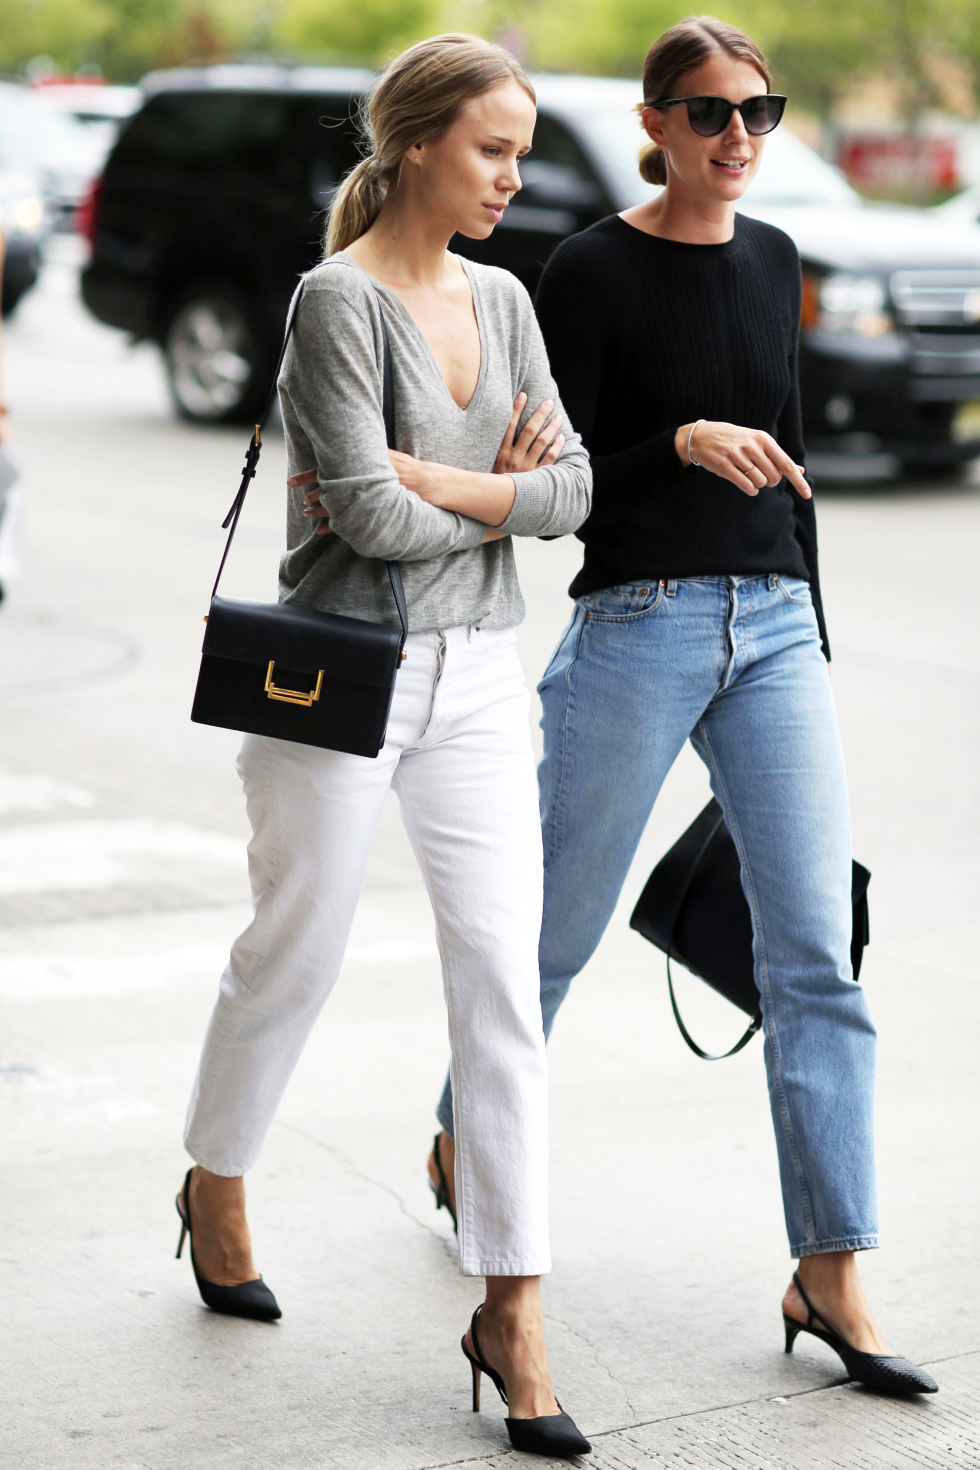 2 Denim Outfit Ideas for Spring - Elin Kling in a gray top, white jeans, and black sling back heels — black top, vintage Levi's jeans, and heels